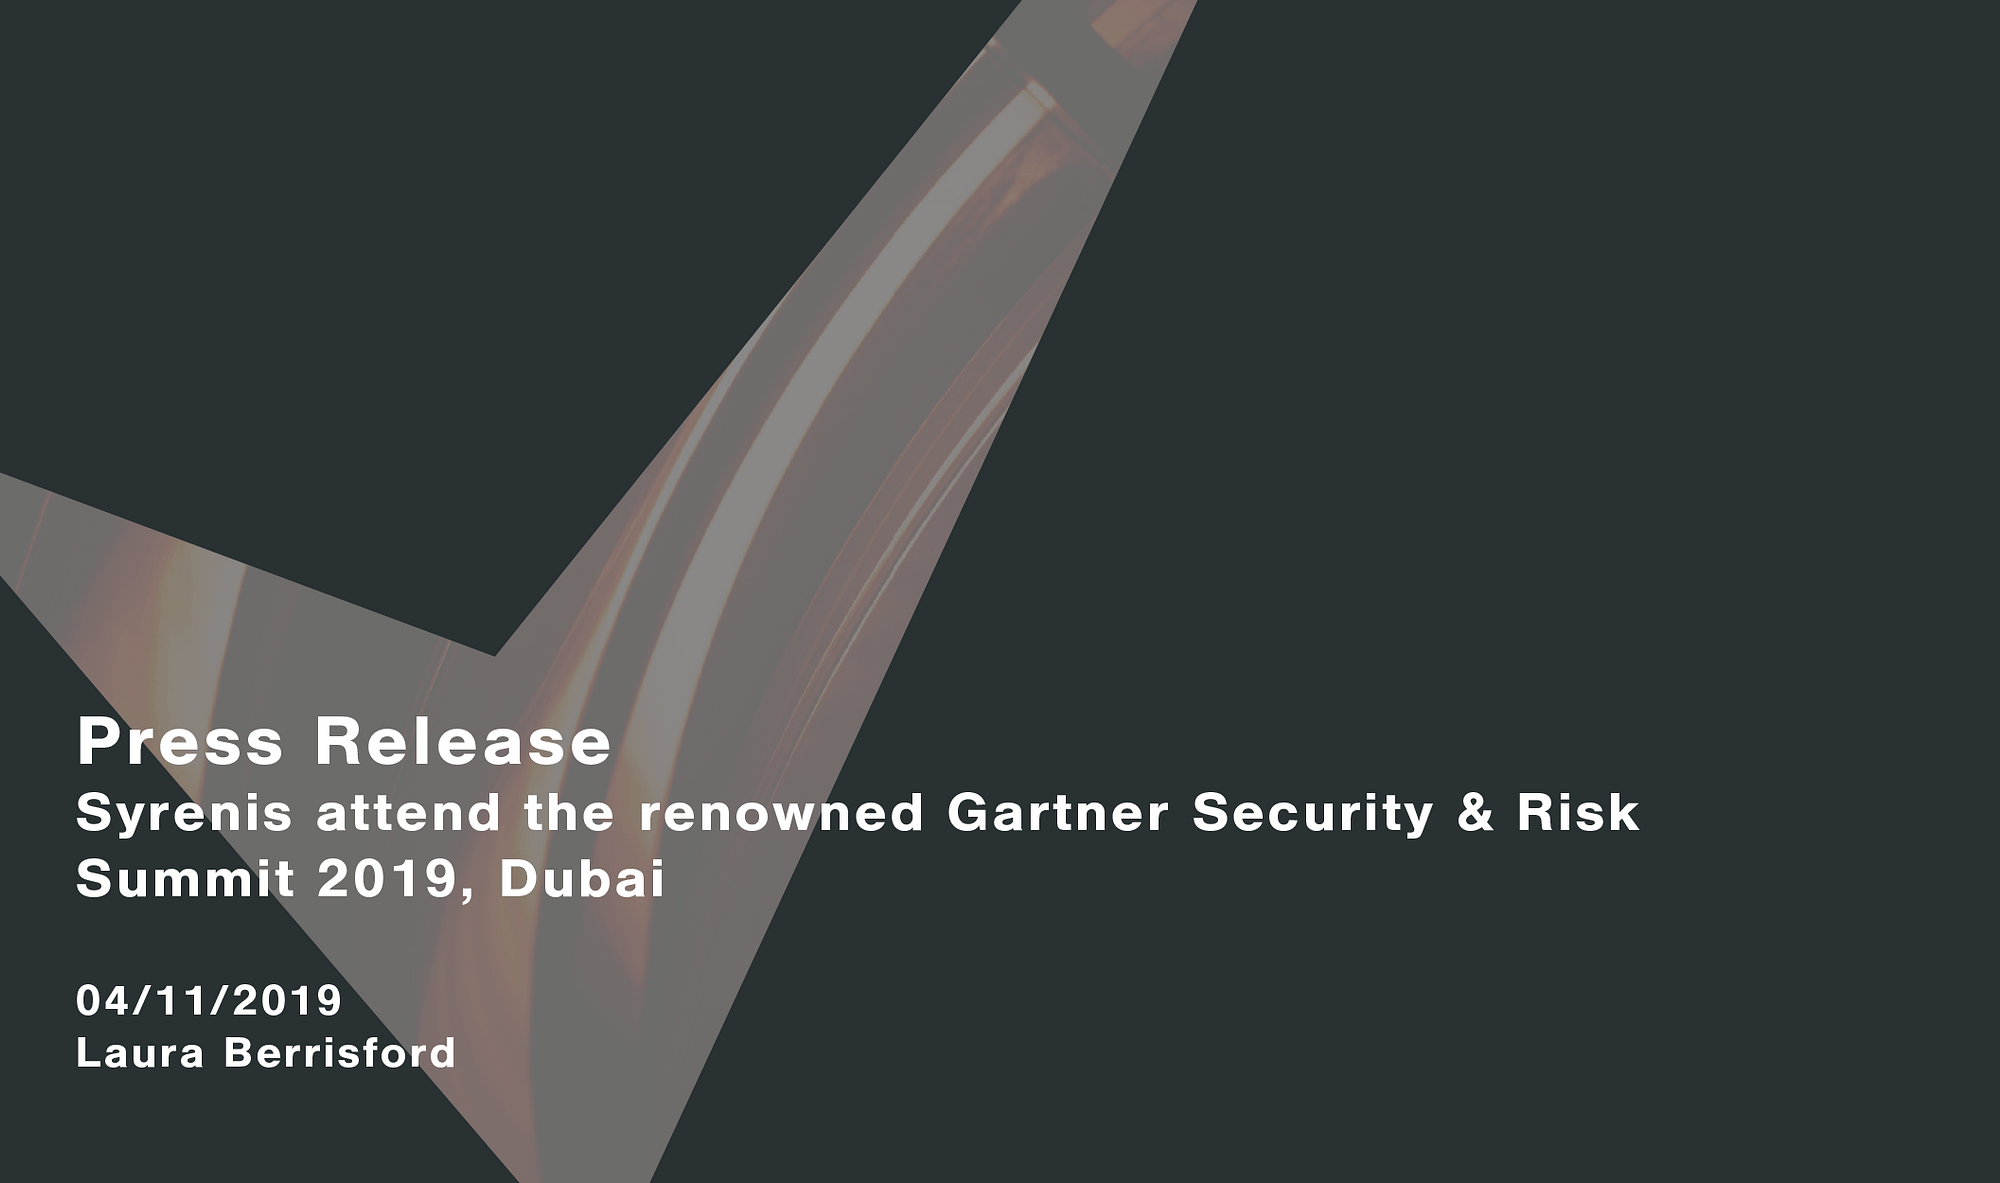 Syrenis-attend-the-renowned-Gartner-Security-Risk-Summit-2019-Dubai